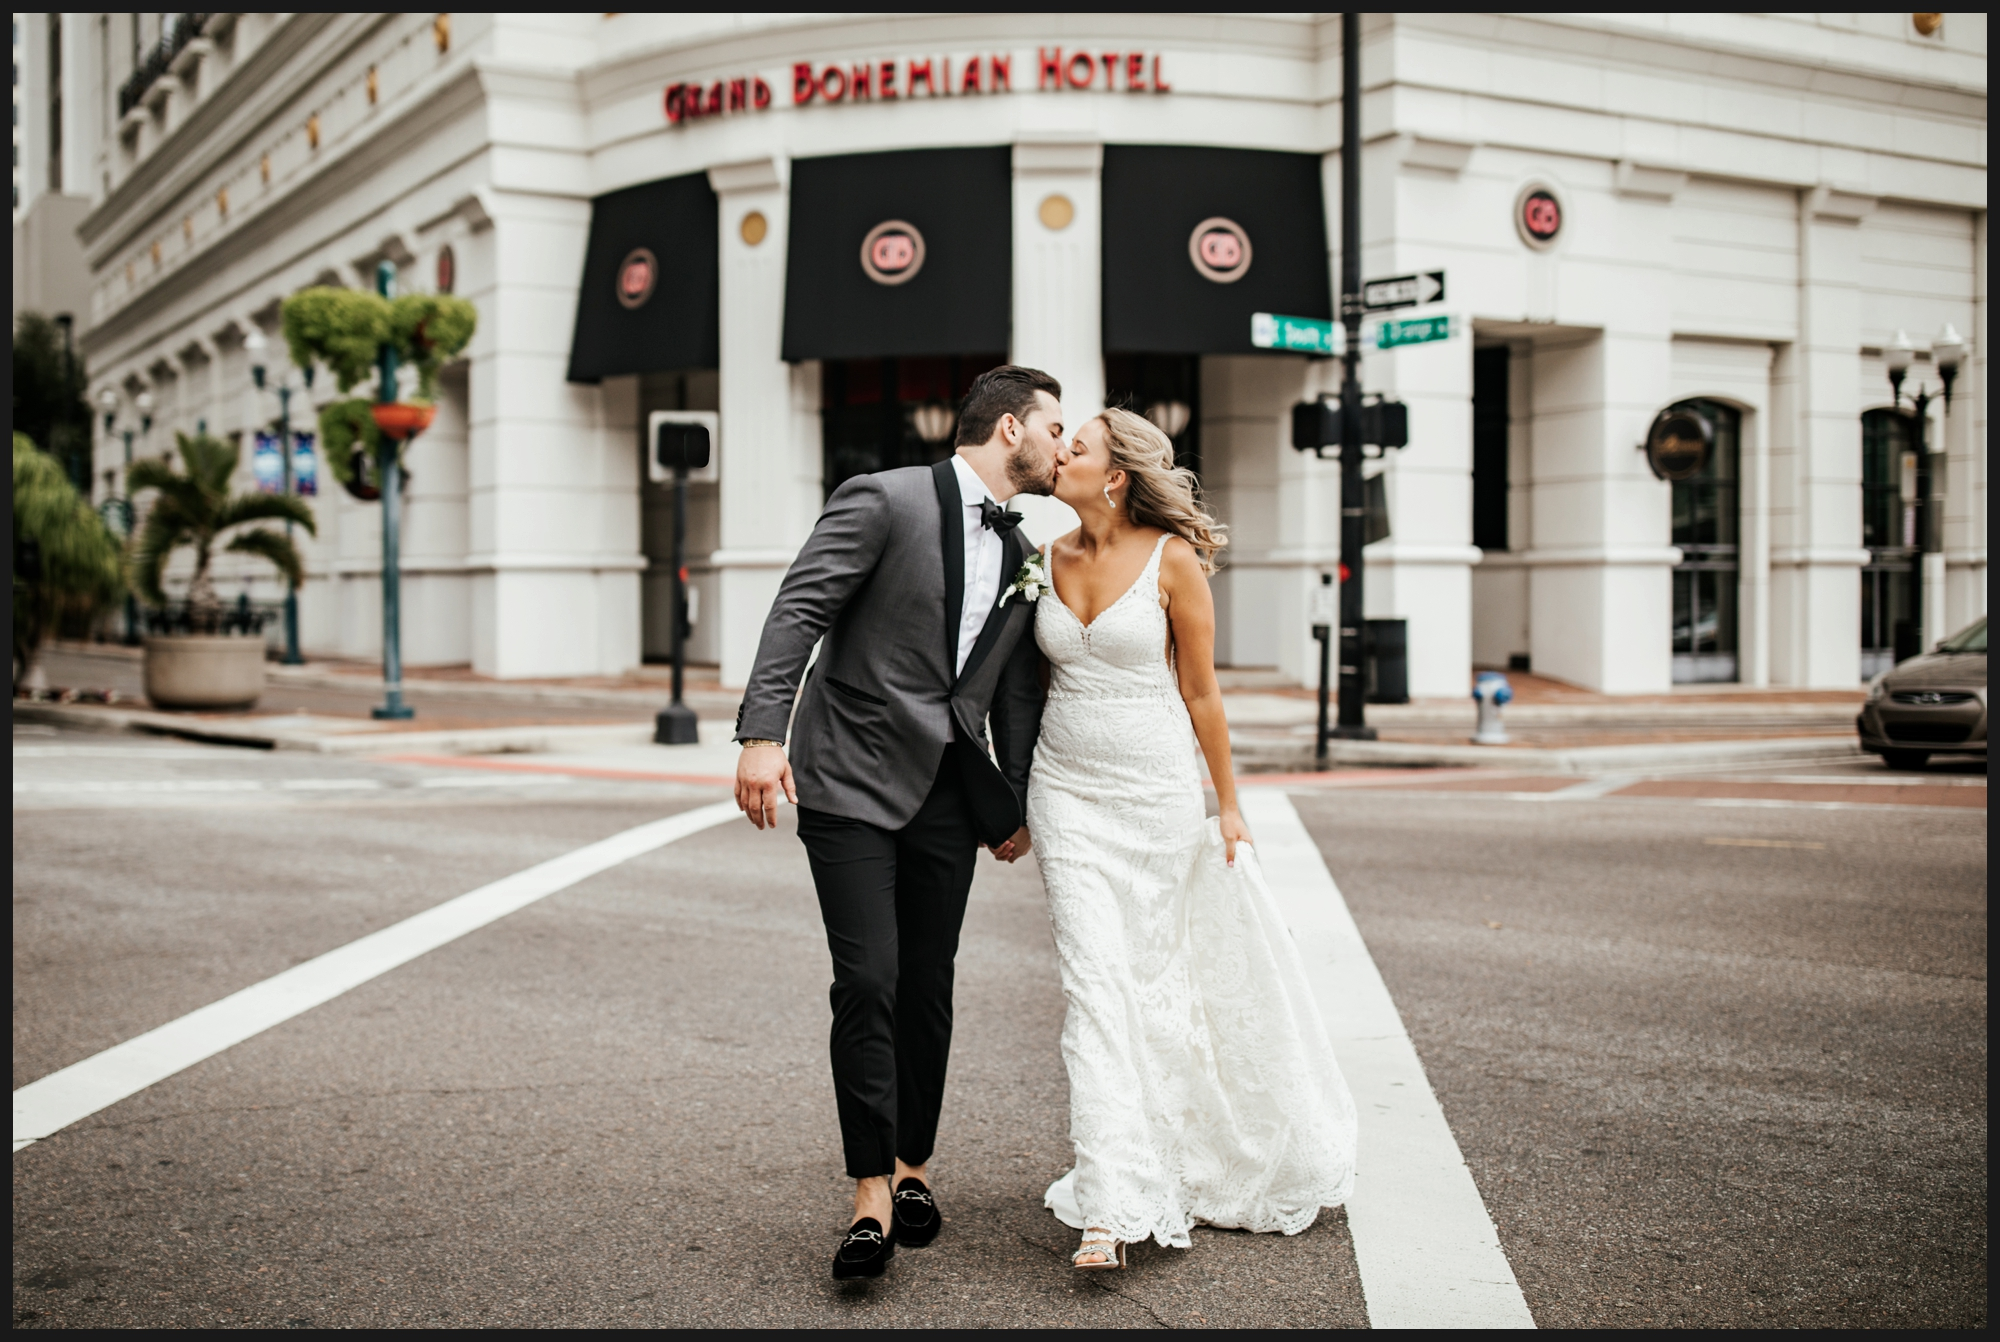 Orlando-Wedding-Photographer-destination-wedding-photographer-florida-wedding-photographer-hawaii-wedding-photographer_0403.jpg